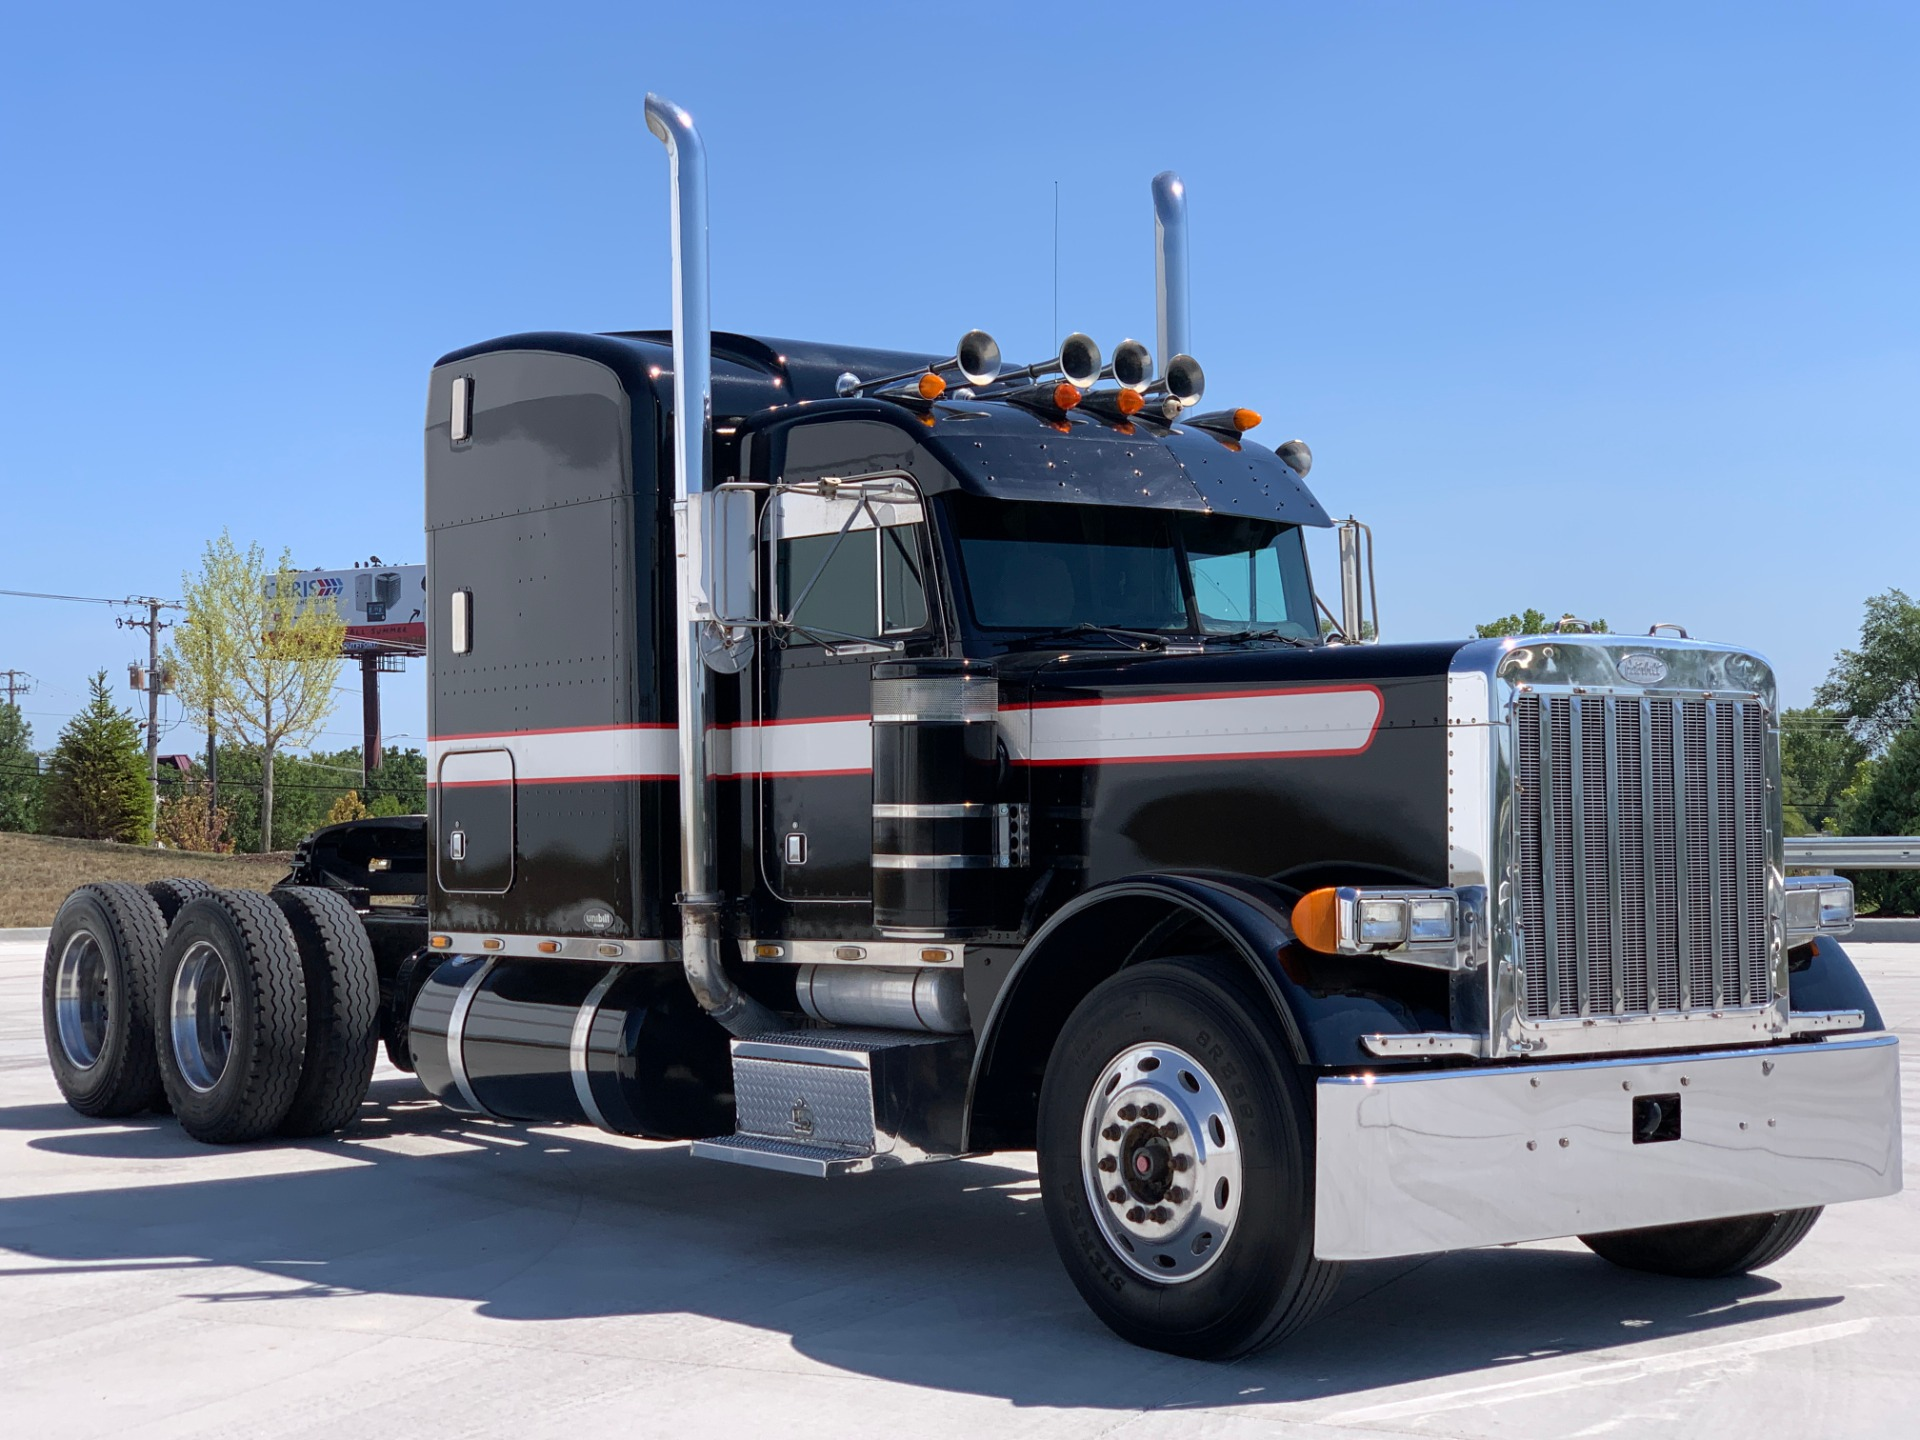 Used 1998 Peterbilt 379 Sleeper Cat 3406 550 Hp Super Clean For Sale Sold Midwest Truck Group Stock 16539